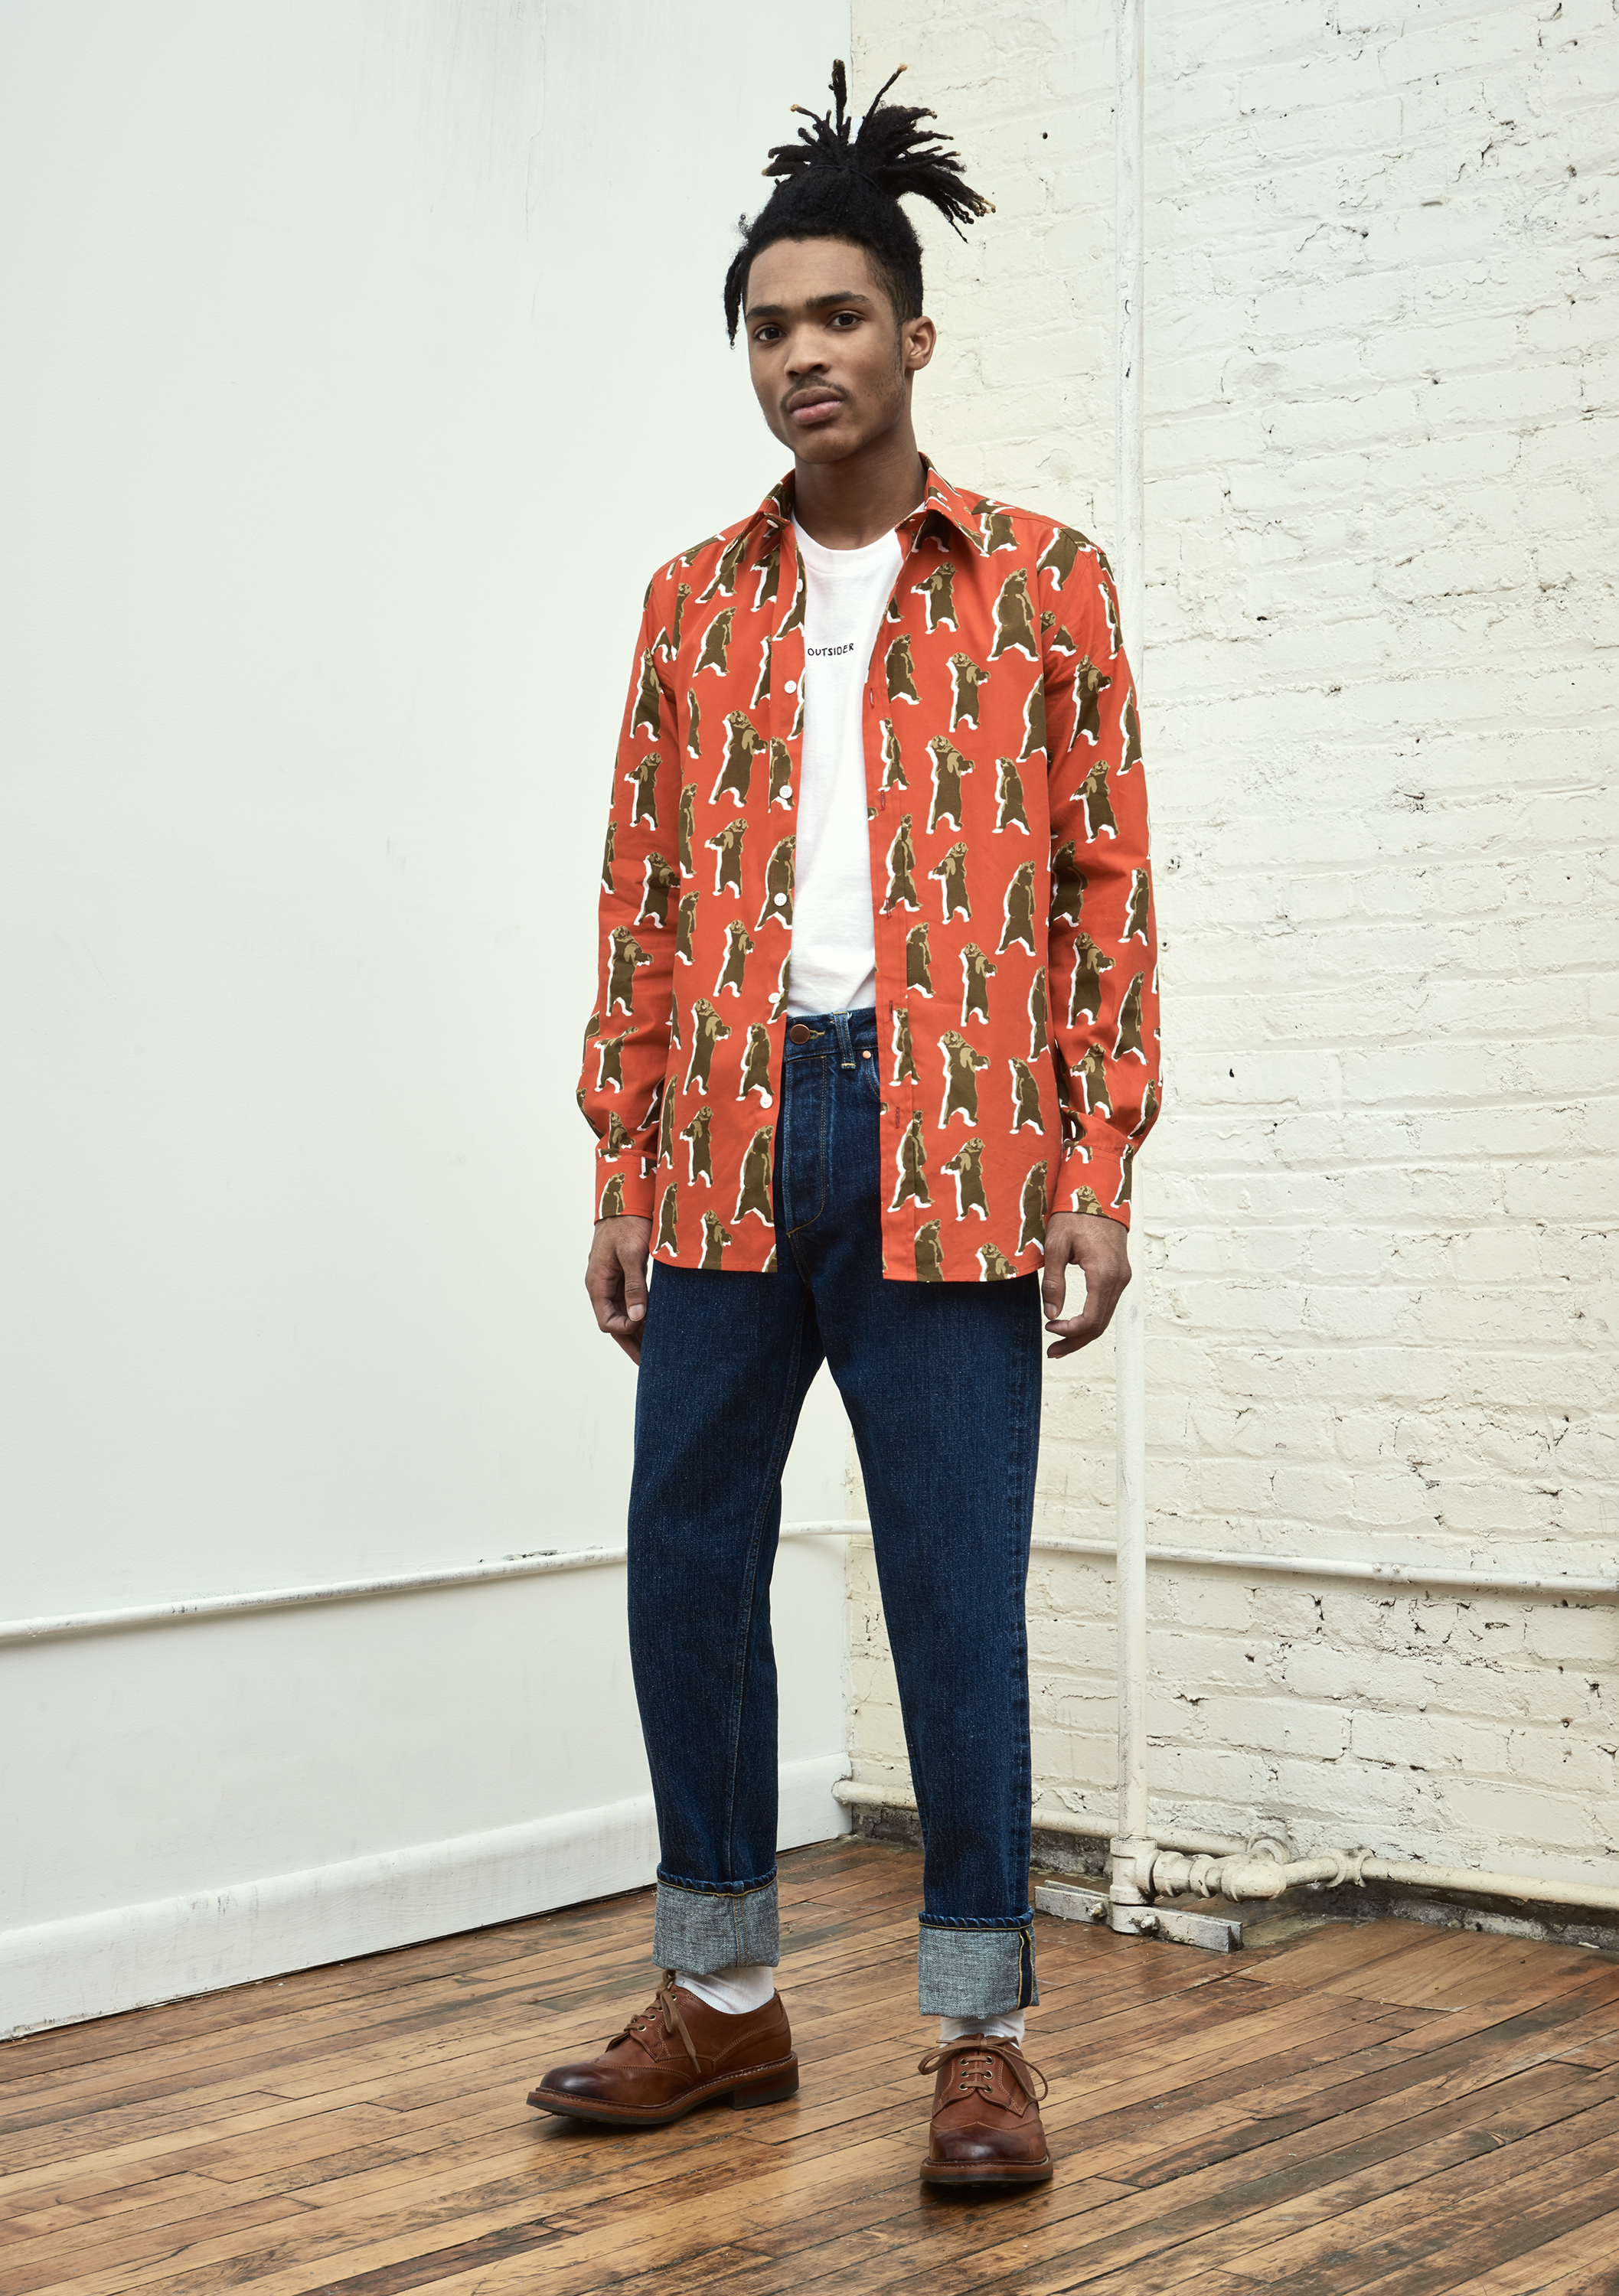 Band of Outsiders Men's Fall 2017